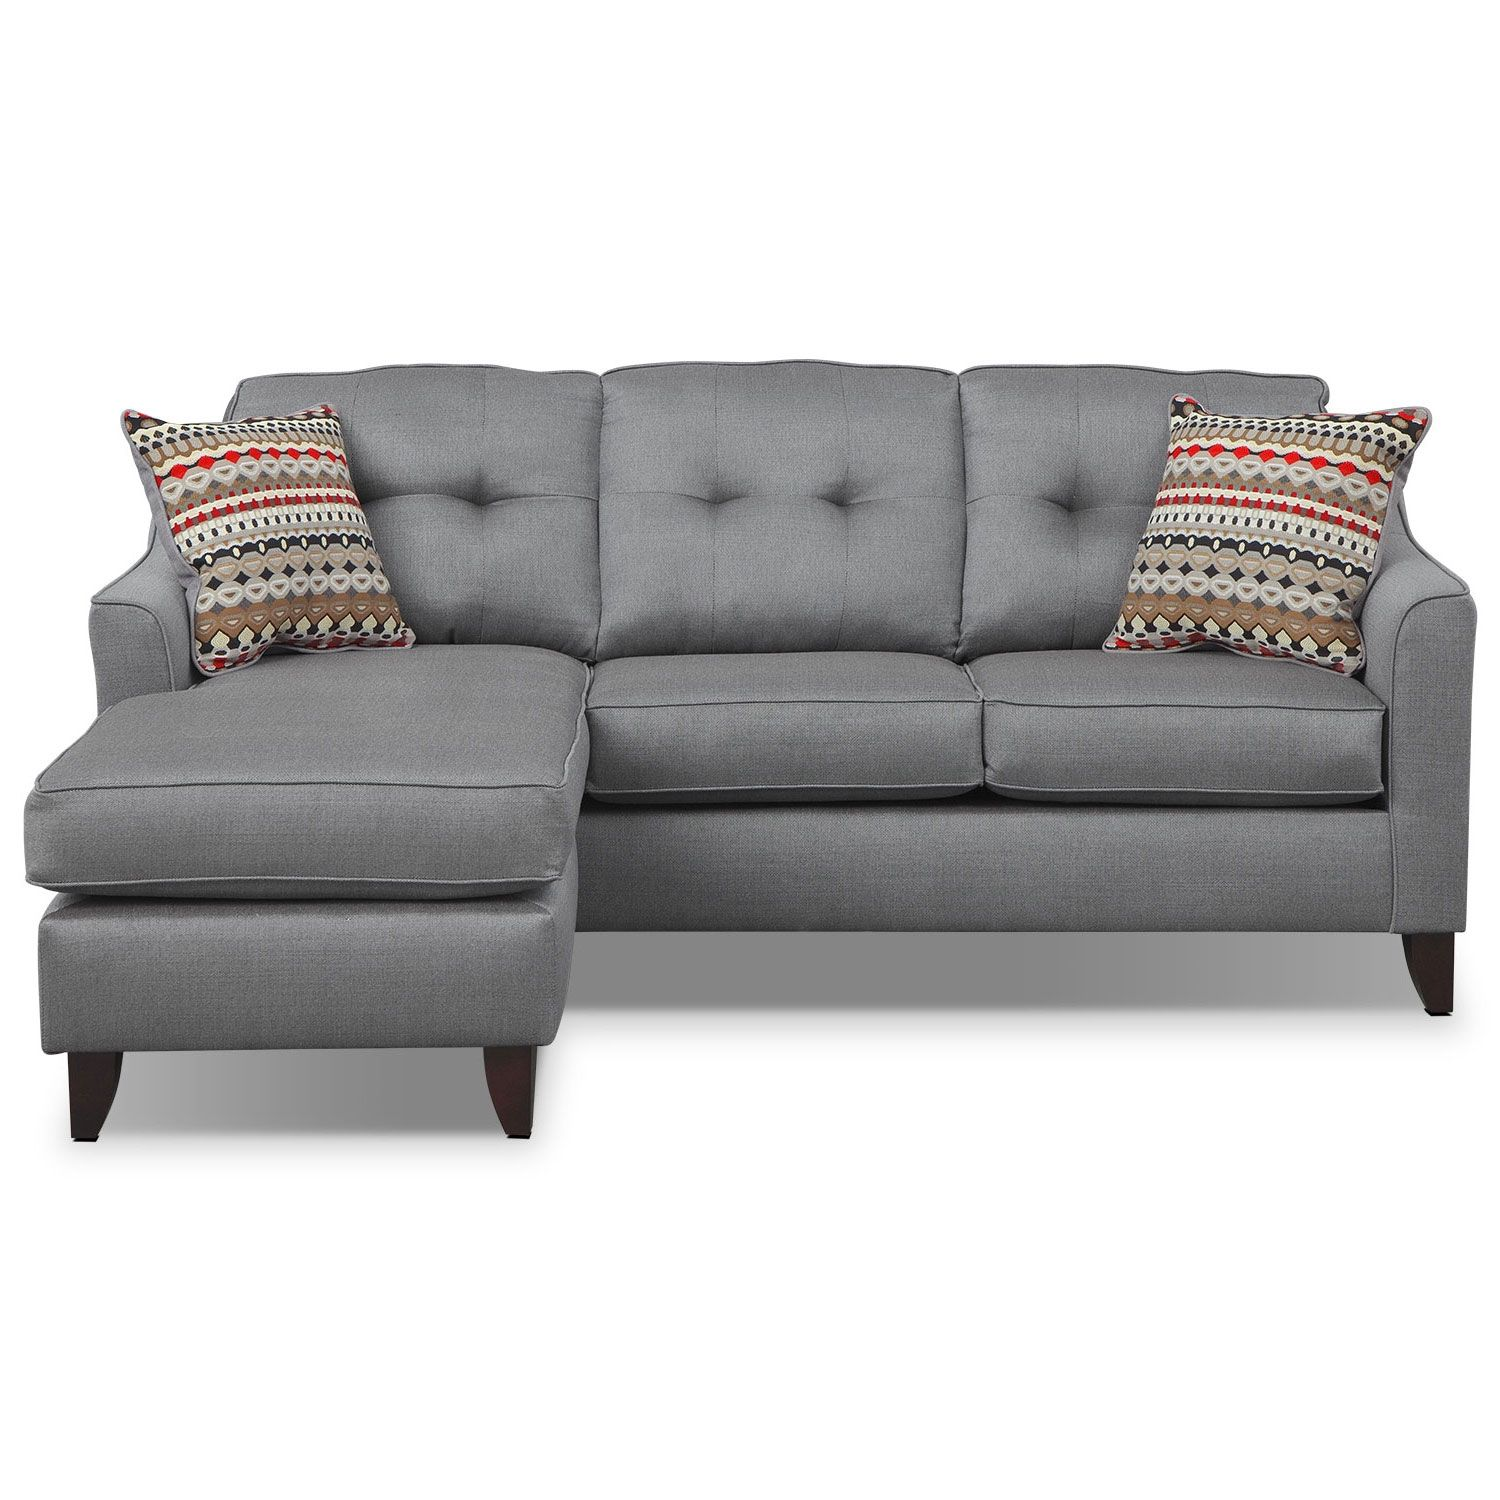 marco gray chaise sofa wooden furniture philippines simply stylish comfortable upholstered with gorgeous polyester to preserve color and prevent wear tear 499 99 featuring a